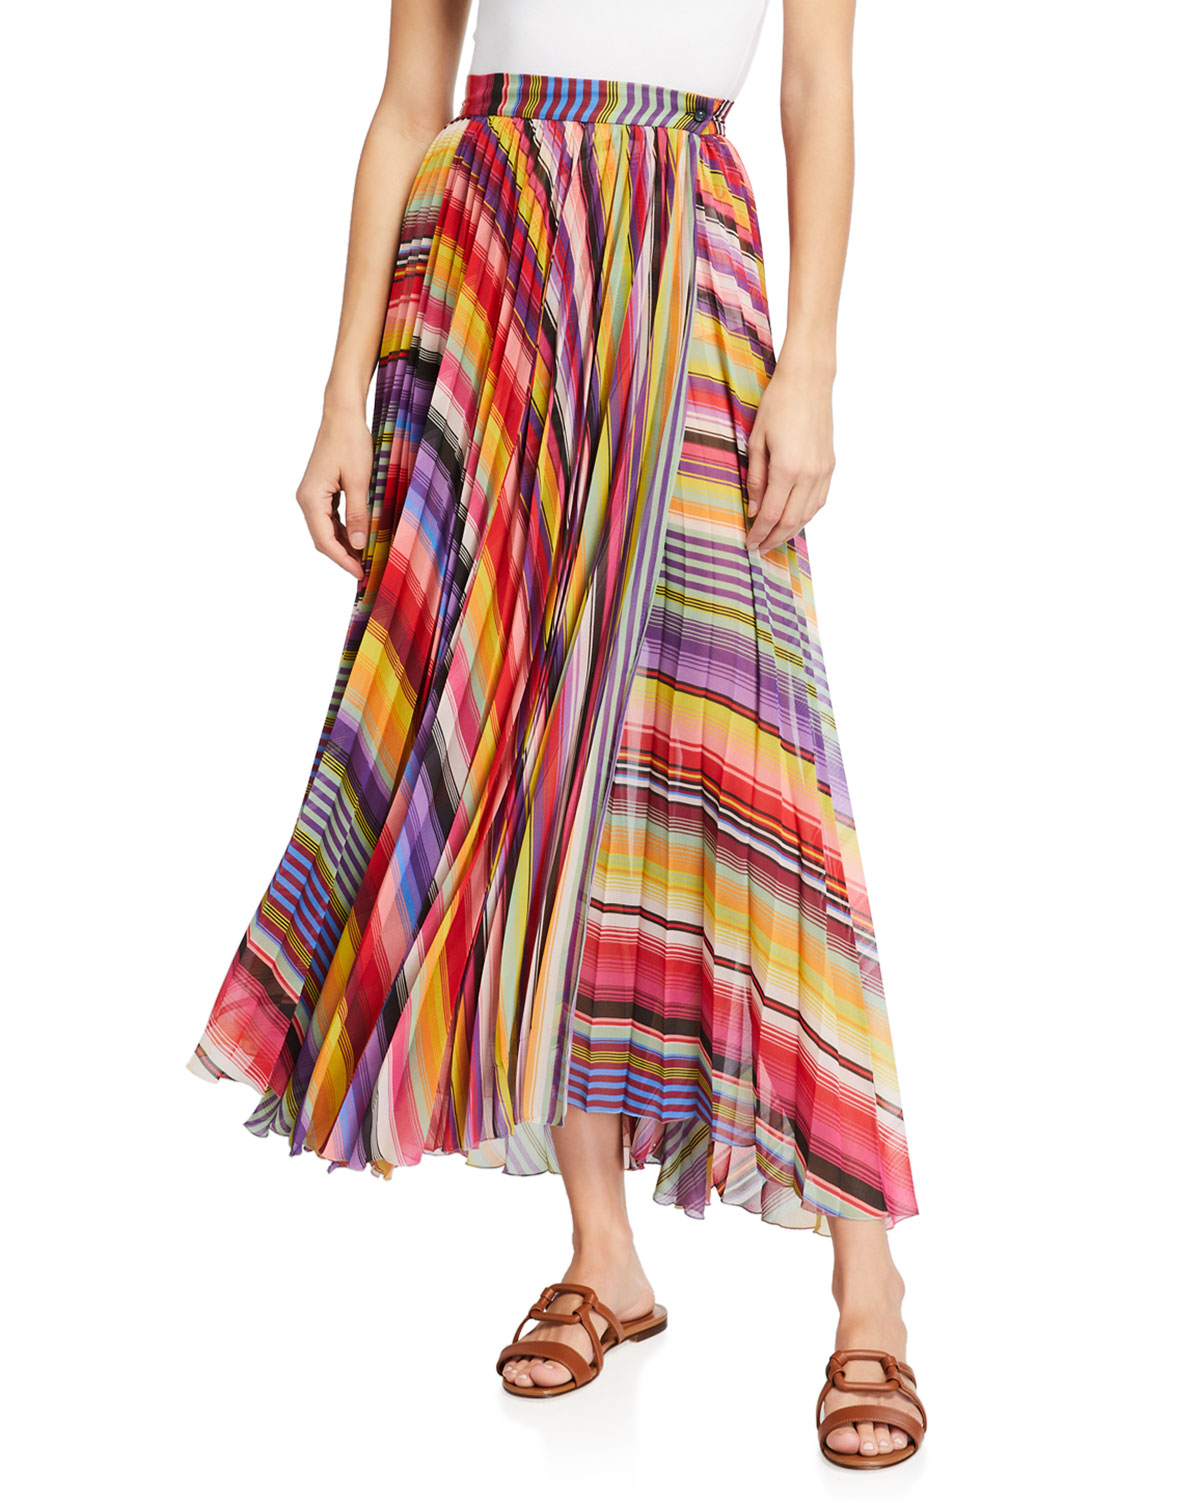 Etro Pleated Rainbow Maxi Skirt